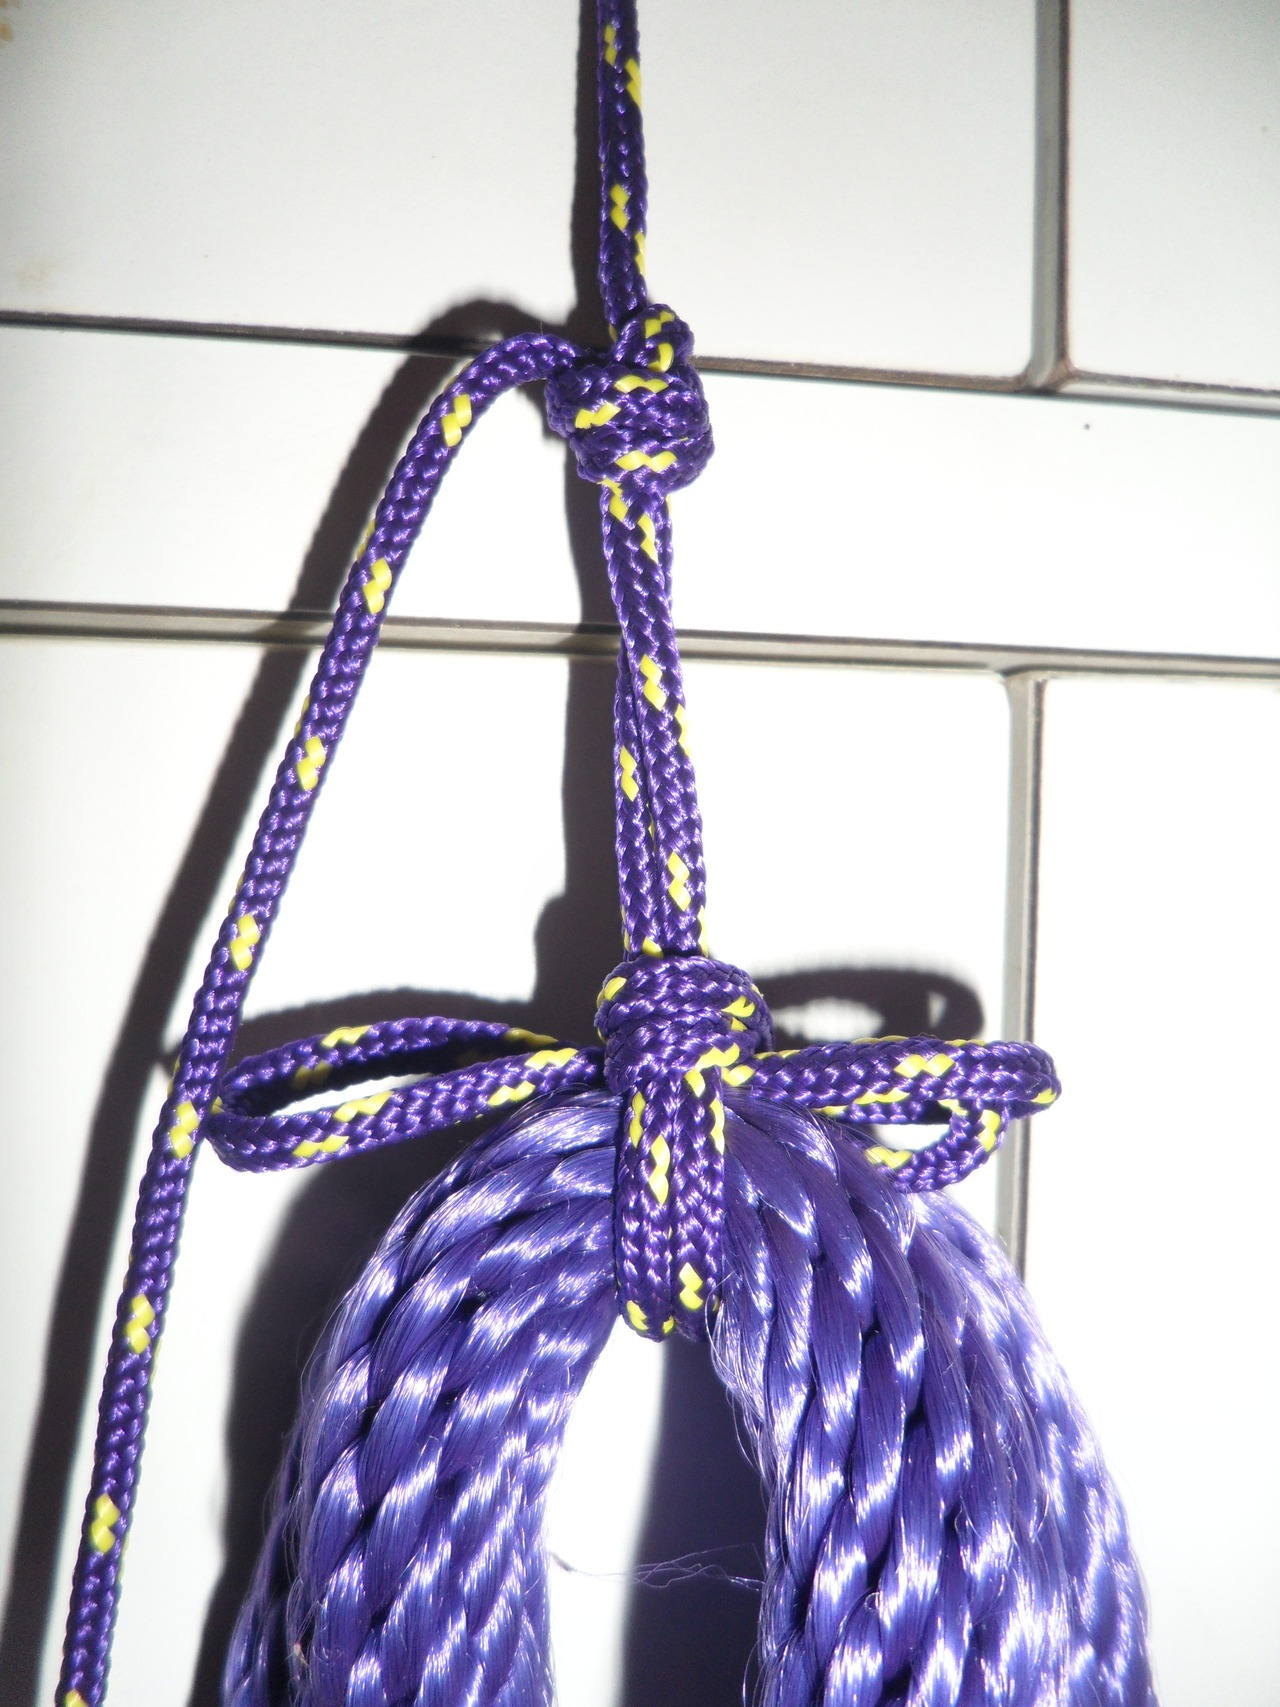 Hanging rope with overhand loops and slipknots